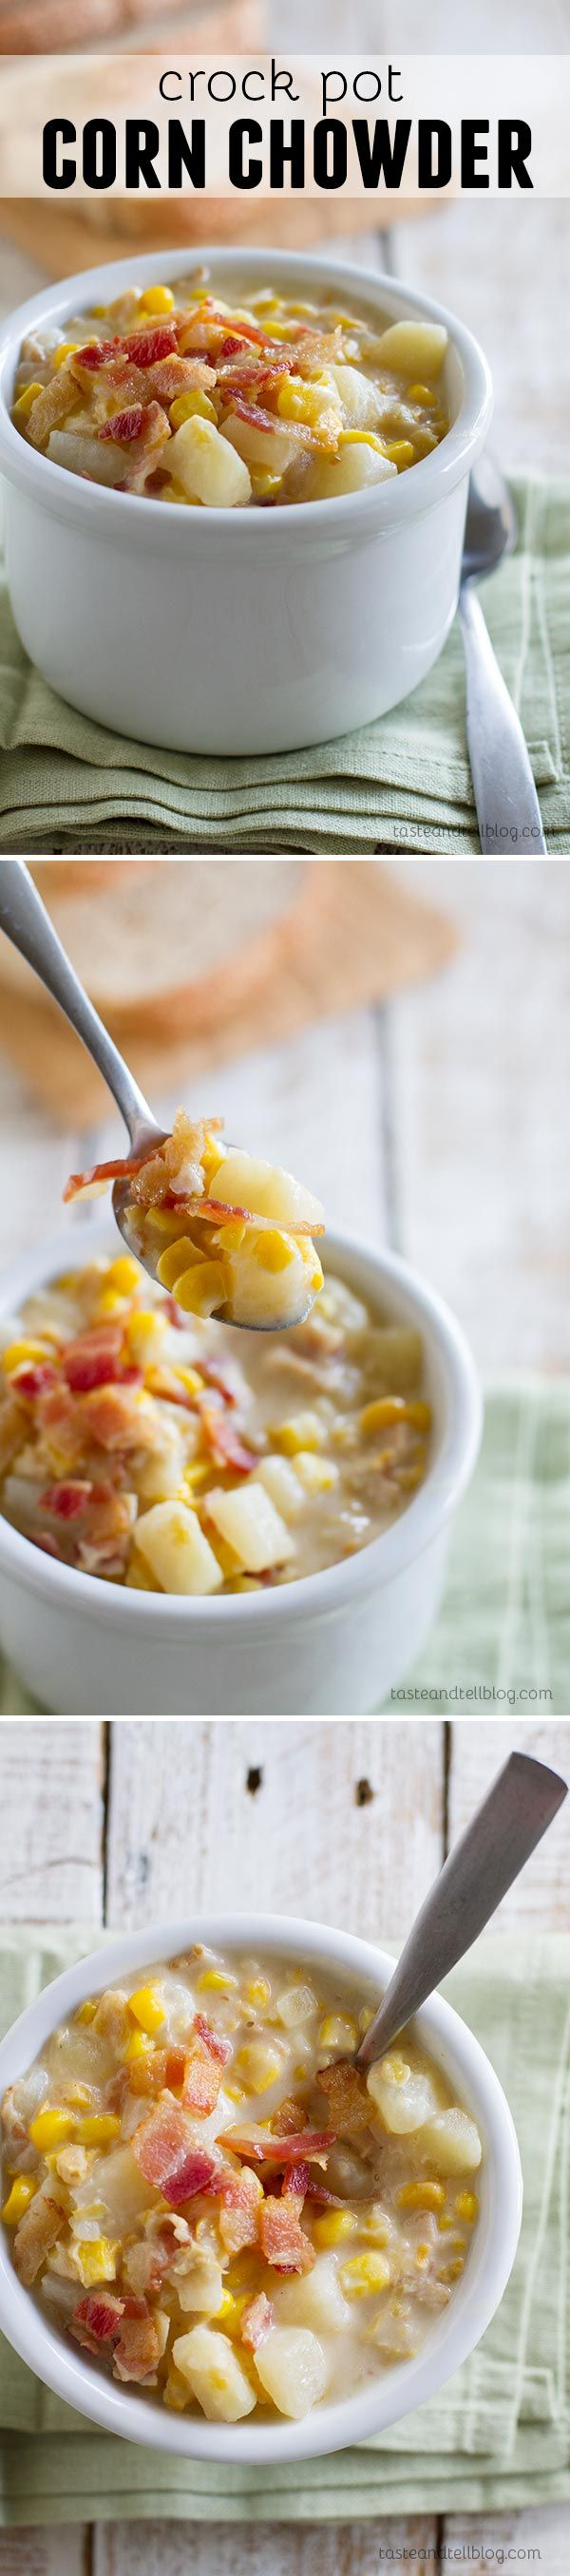 white Corn Pot max when Corn and My Chowder wrong air recipe go you for Crock recipe  mom   s jd   Chowder mom   s it   s pink   can   t